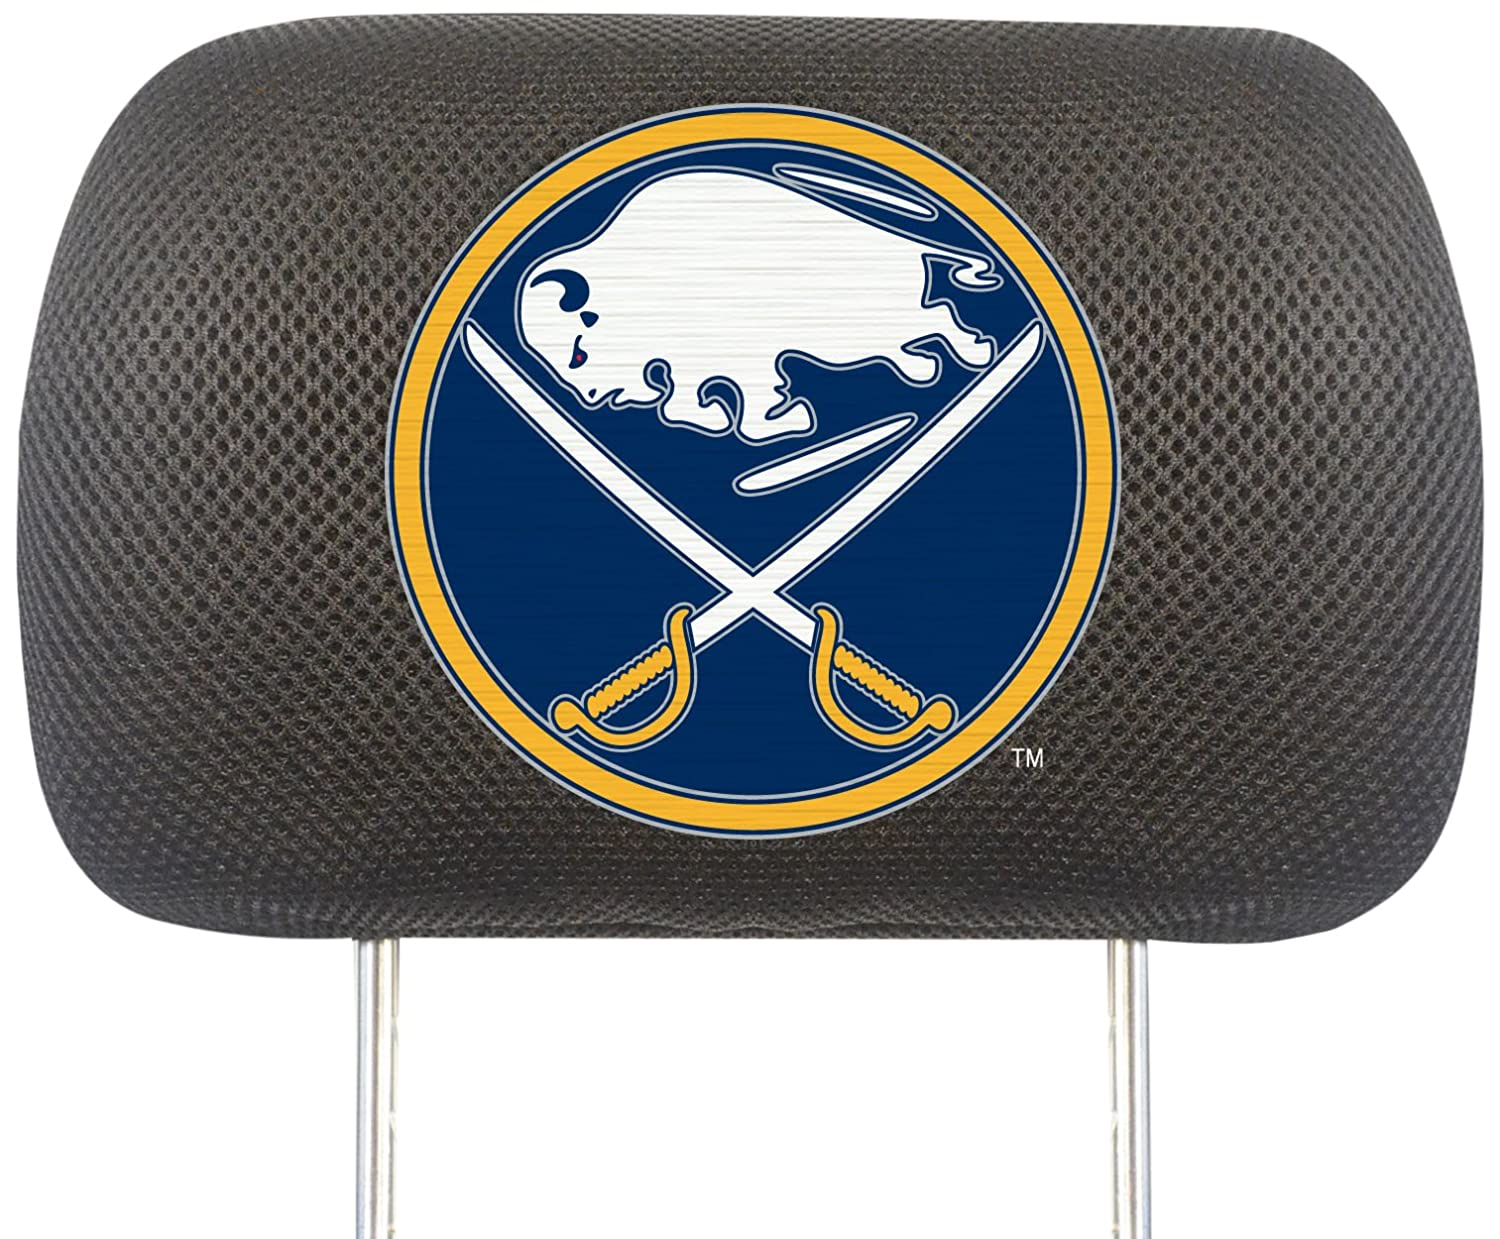 FANMATS NHL Buffalo Sabres Polyester Head Rest Cover 14779